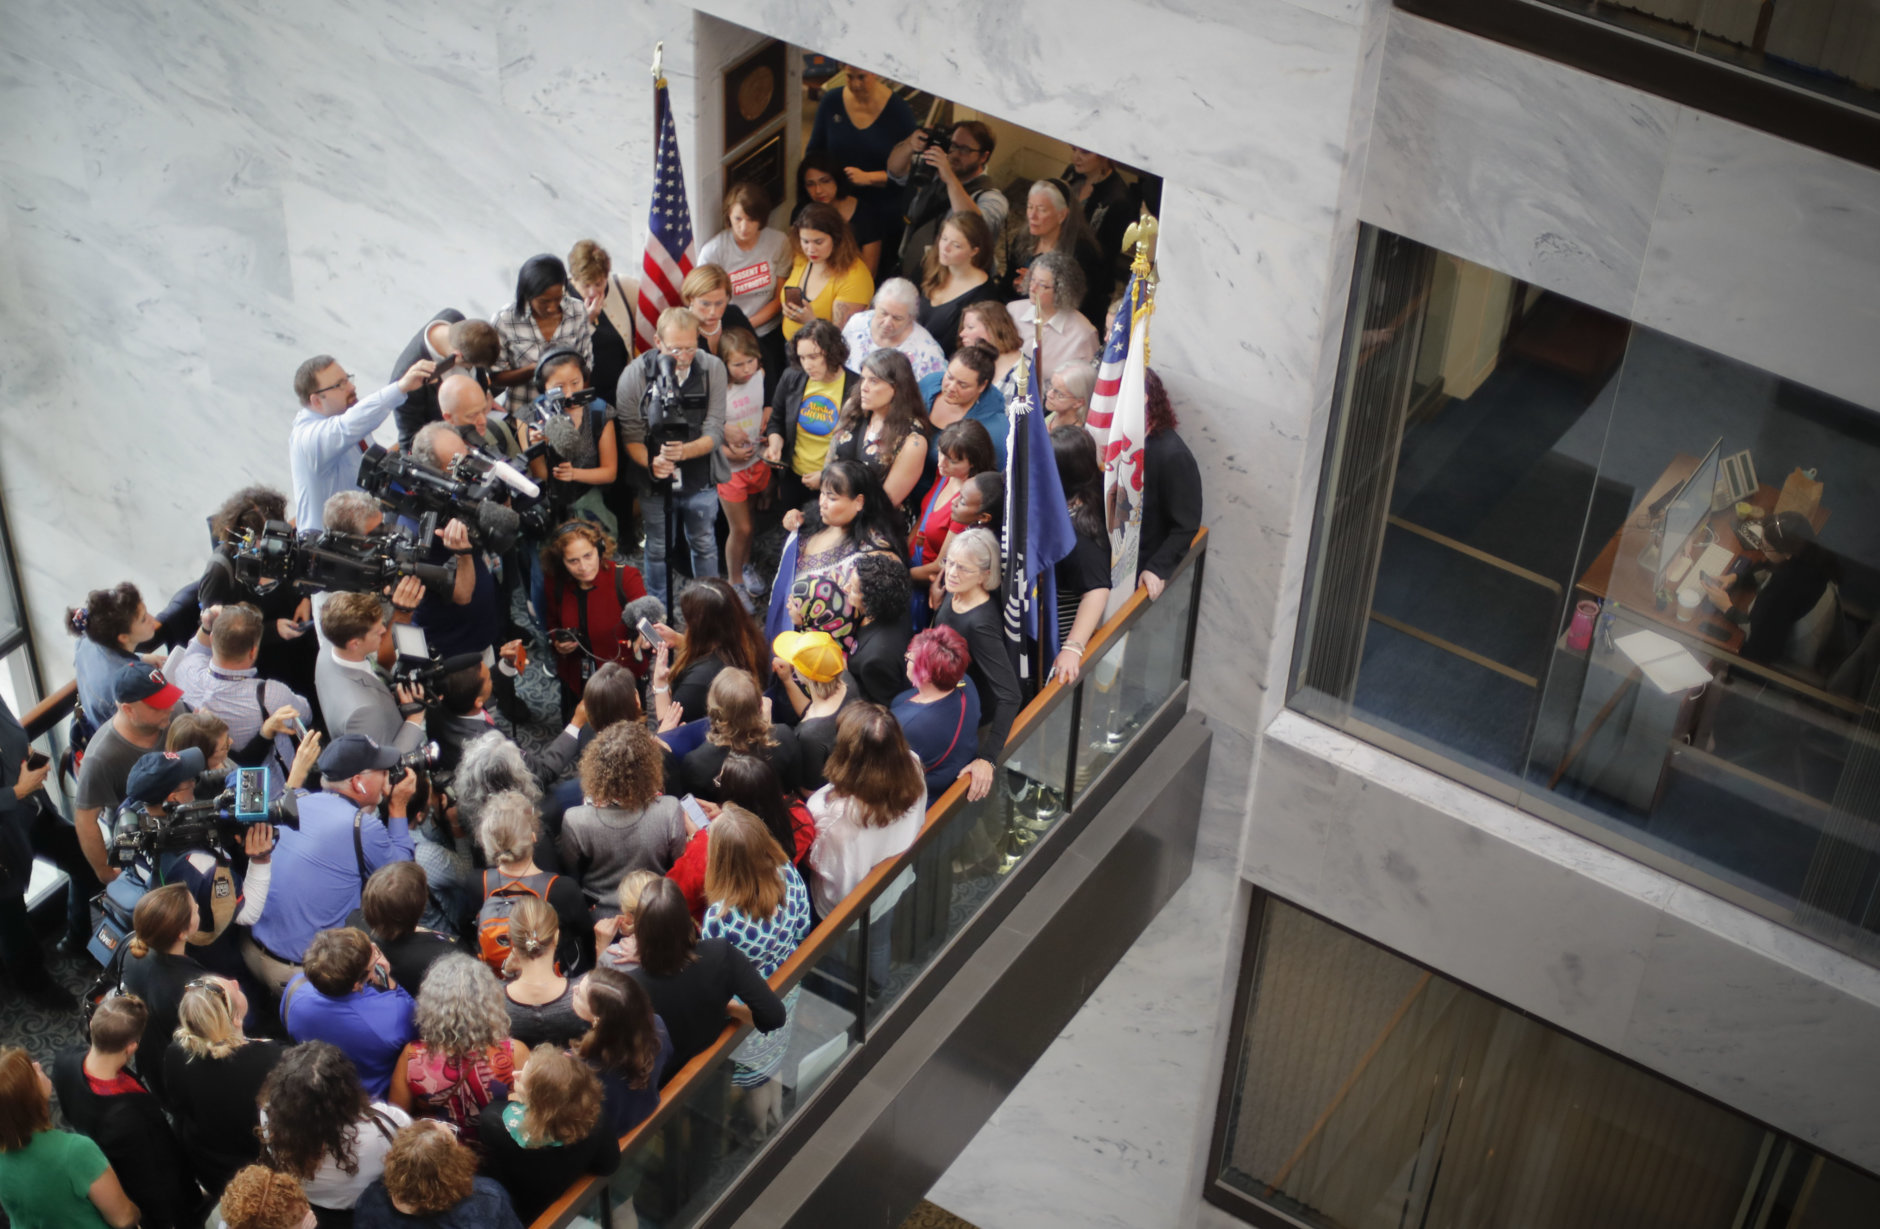 Demonstrators gather outside the Senate office of Sen. Lisa Murkowski, R-Alaska, on Capitol Hill in Washington, Friday, Oct. 4, 2018. Murkowski was the lone Republican to vote against advancing Kavanaugh's nomination on Friday. (AP Photo/Pablo Martinez Monsivais)